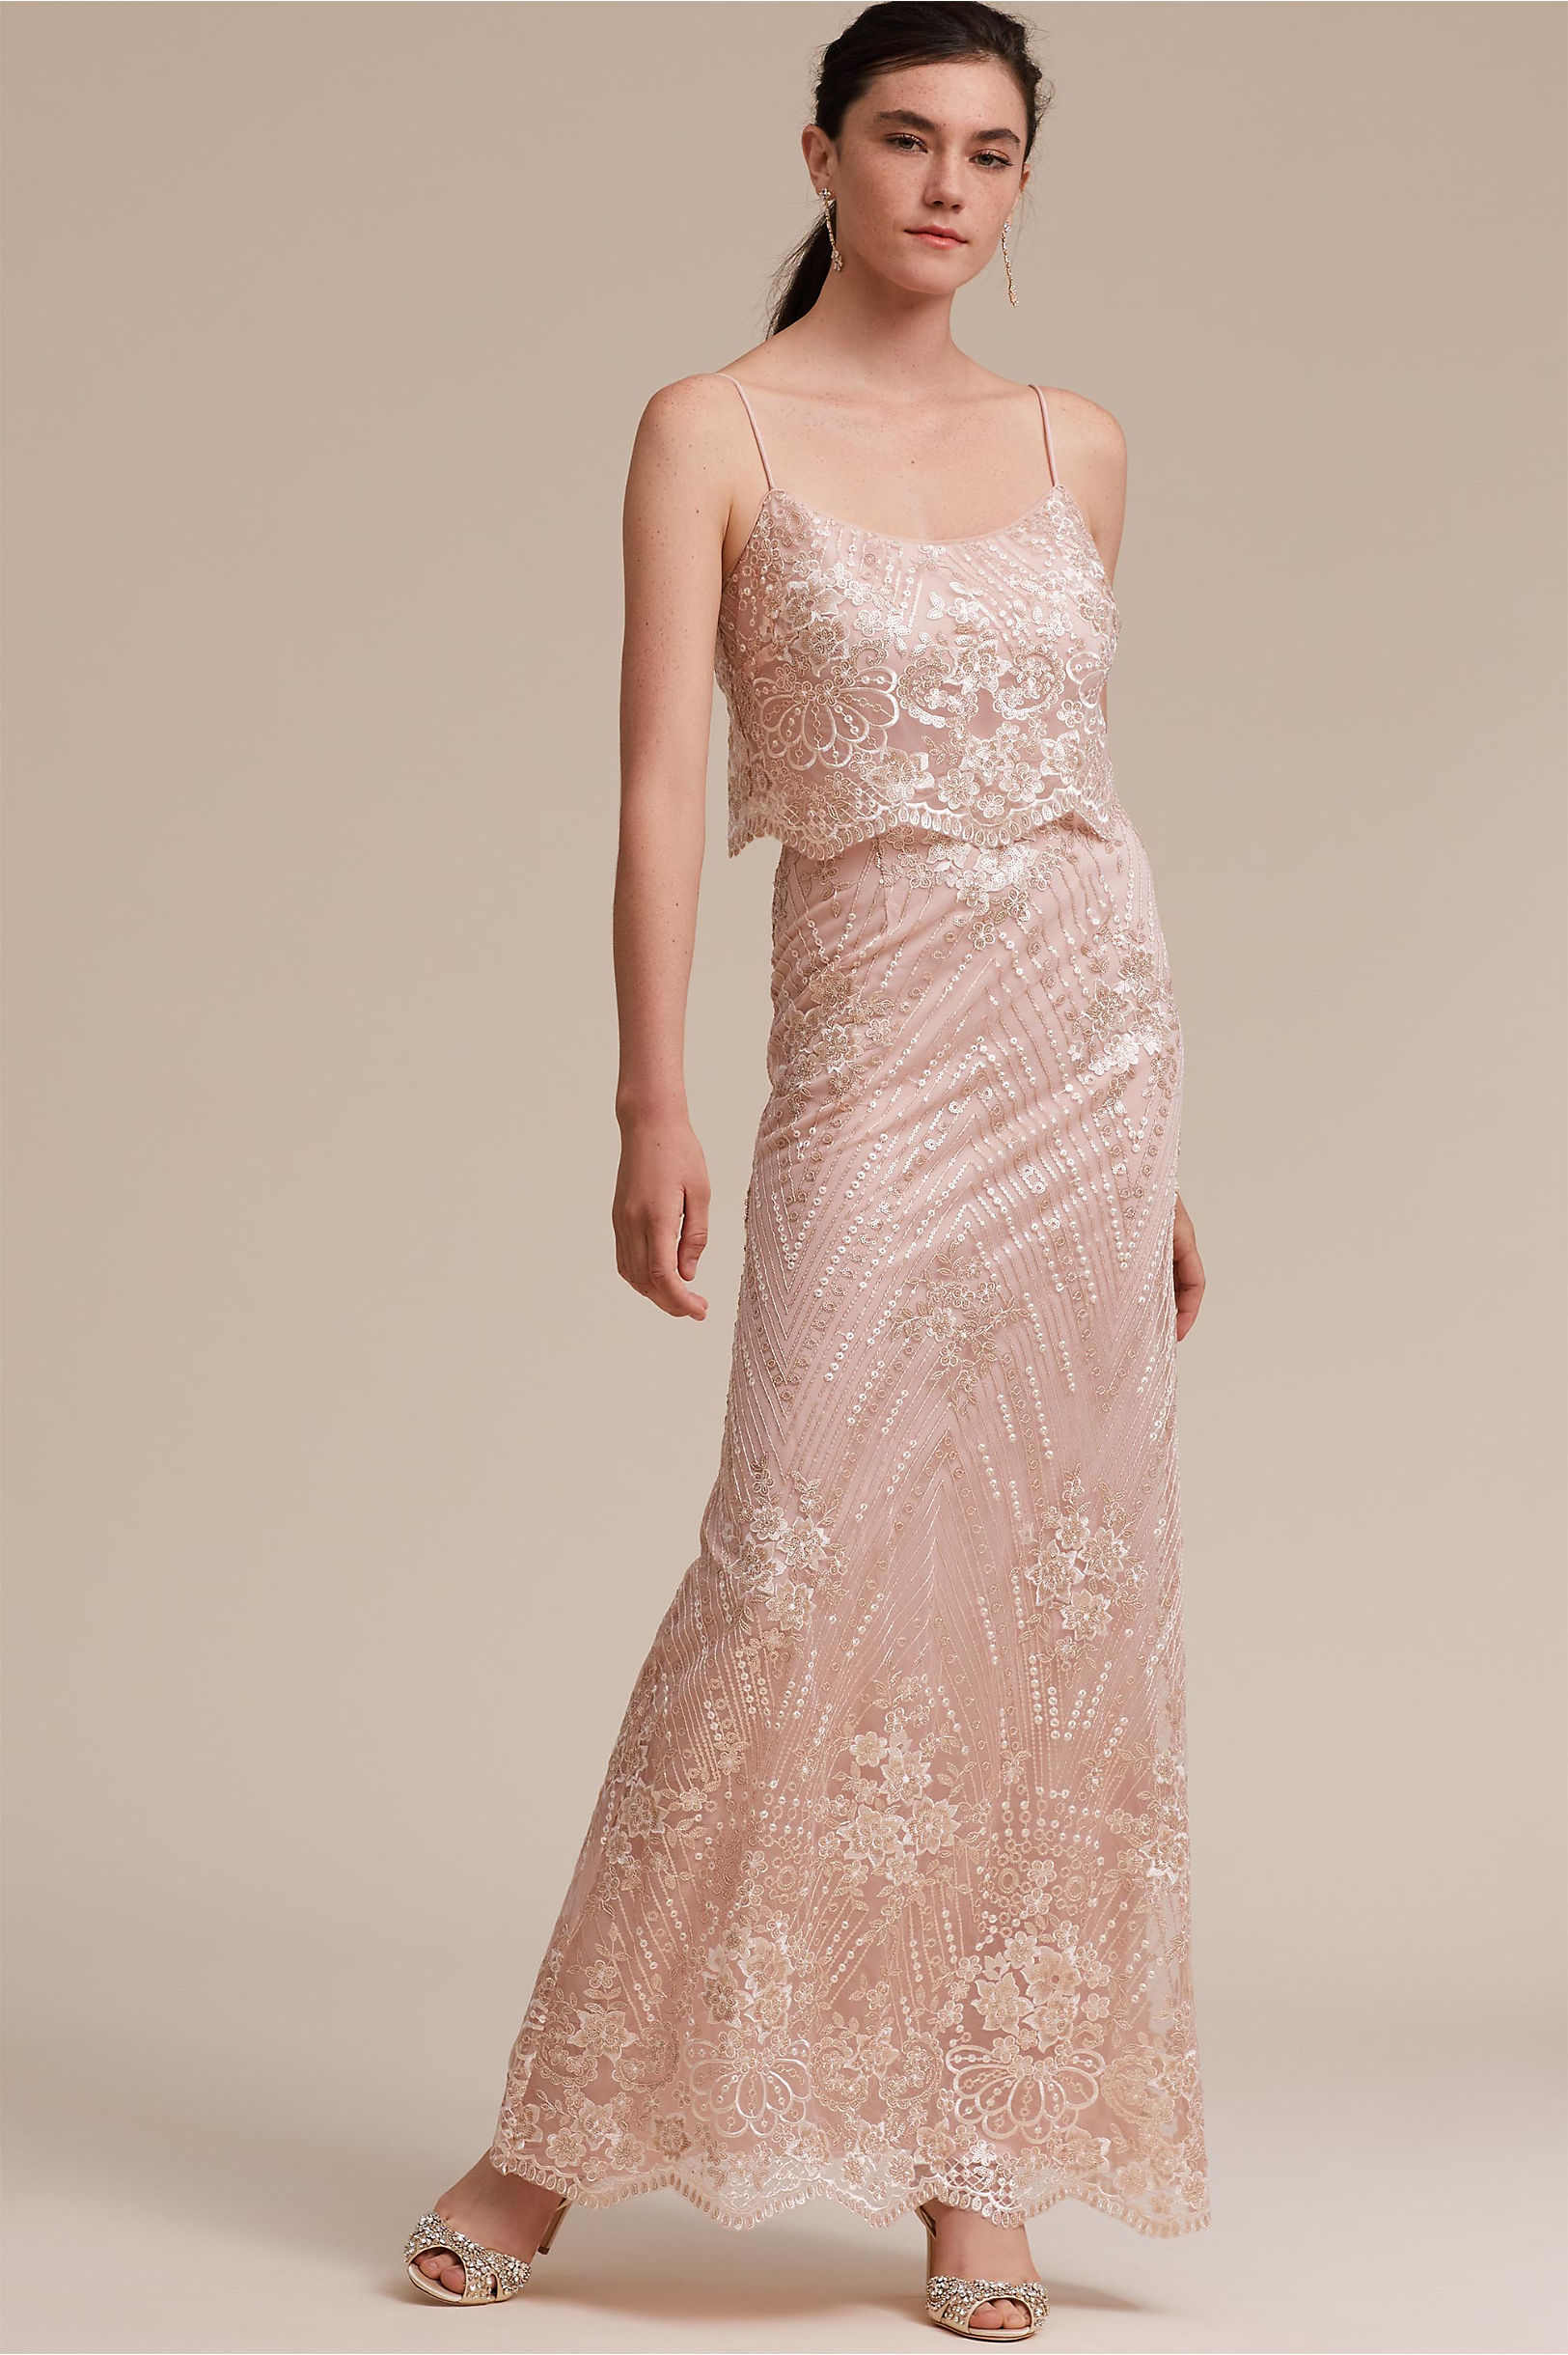 c9f817bc7c1 Arden Dress Blush in Bridesmaids   Bridal Party